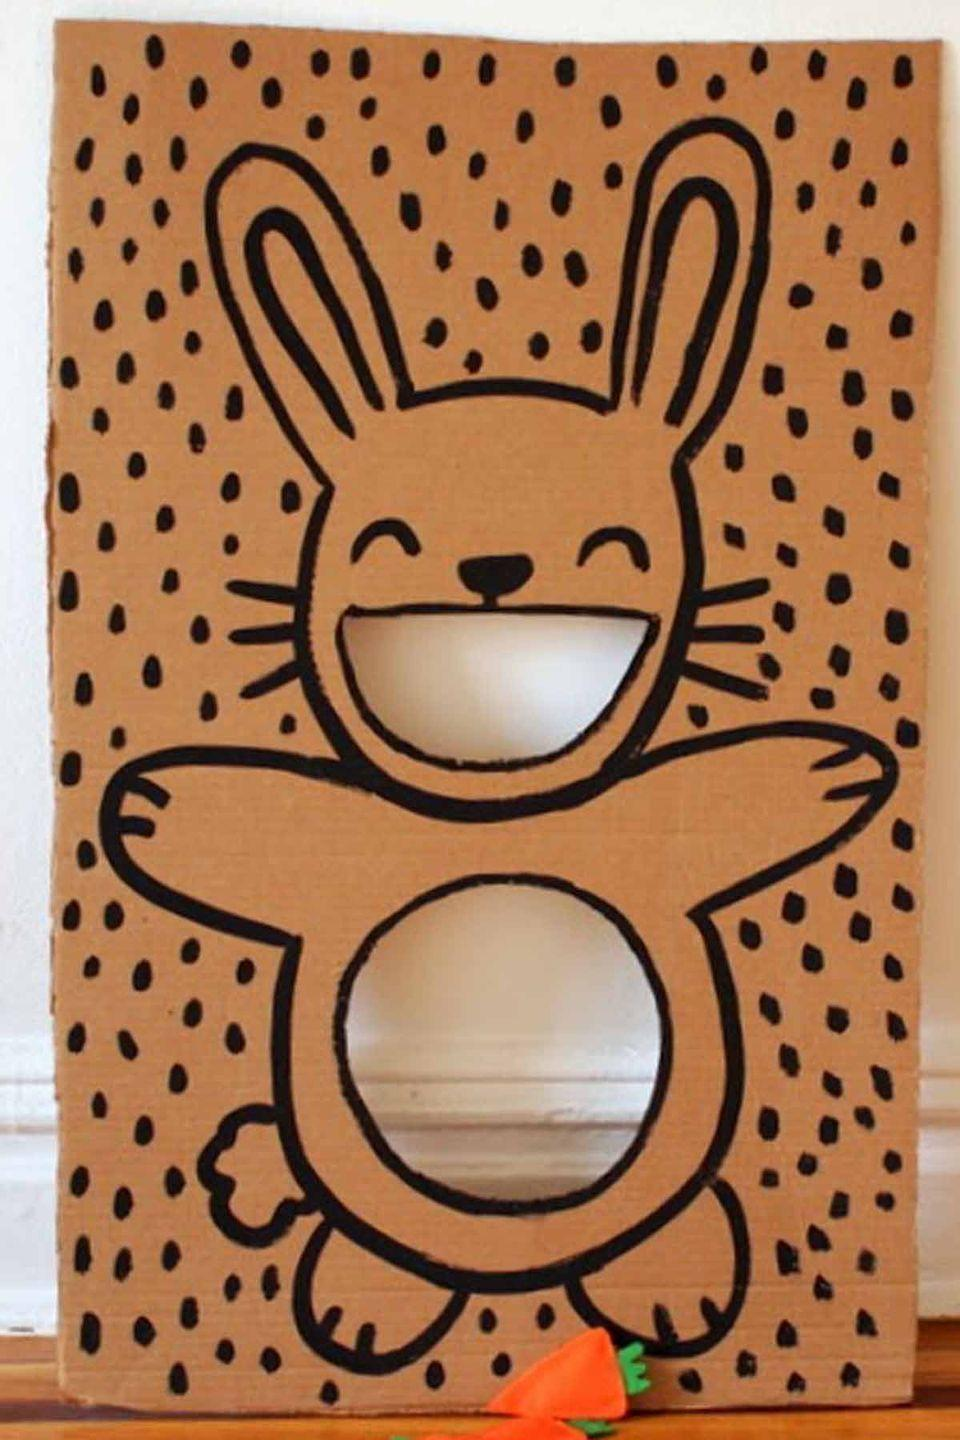 """<p>This is a festive and fun twist on the classic game. Kids will have a blast tossing carrot bean bags through this grinning bunny. </p><p><em>Get the tutorial at <a href=""""http://www.pinkstripeysocks.com/2014/04/diy-easter-bunny-bean-bag-toss.html"""" rel=""""nofollow noopener"""" target=""""_blank"""" data-ylk=""""slk:Pink Stripey Socks"""" class=""""link rapid-noclick-resp"""">Pink Stripey Socks</a>.</em></p>"""